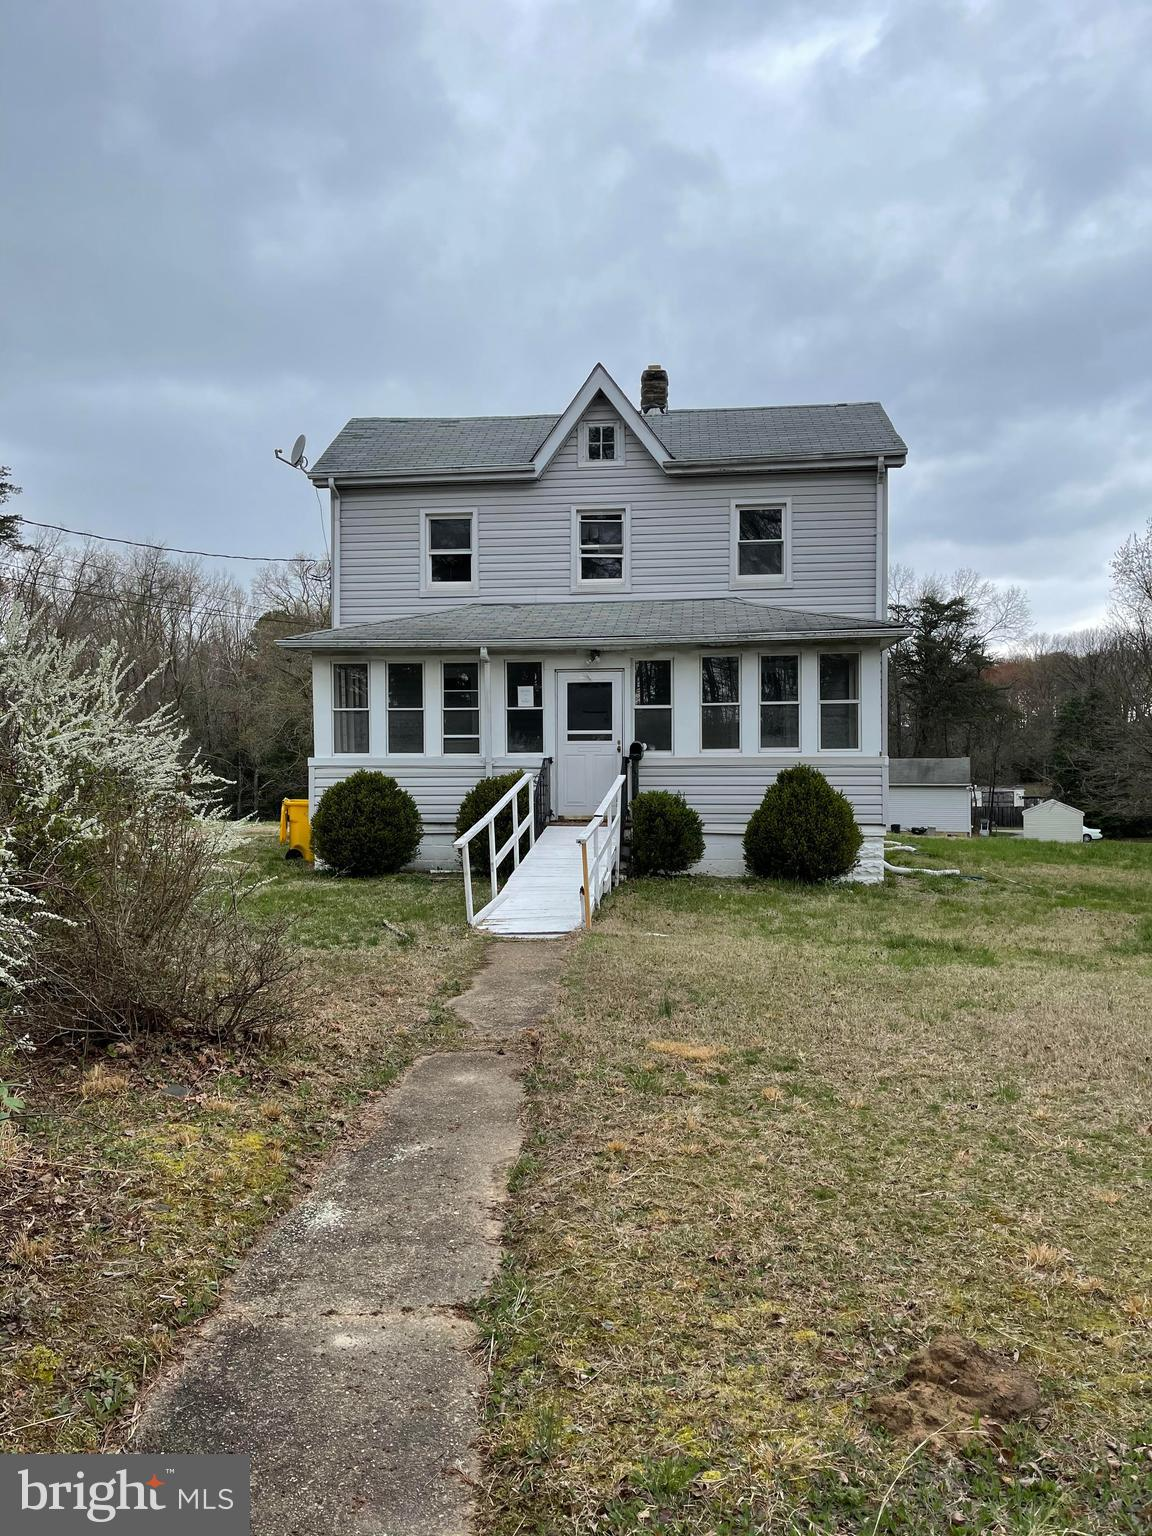 145 MANNS ROAD, SEVERNA PARK, Maryland 21146, 4 Bedrooms Bedrooms, ,1 BathroomBathrooms,Single Family,For Sale,145 MANNS ROAD,MDAA463900